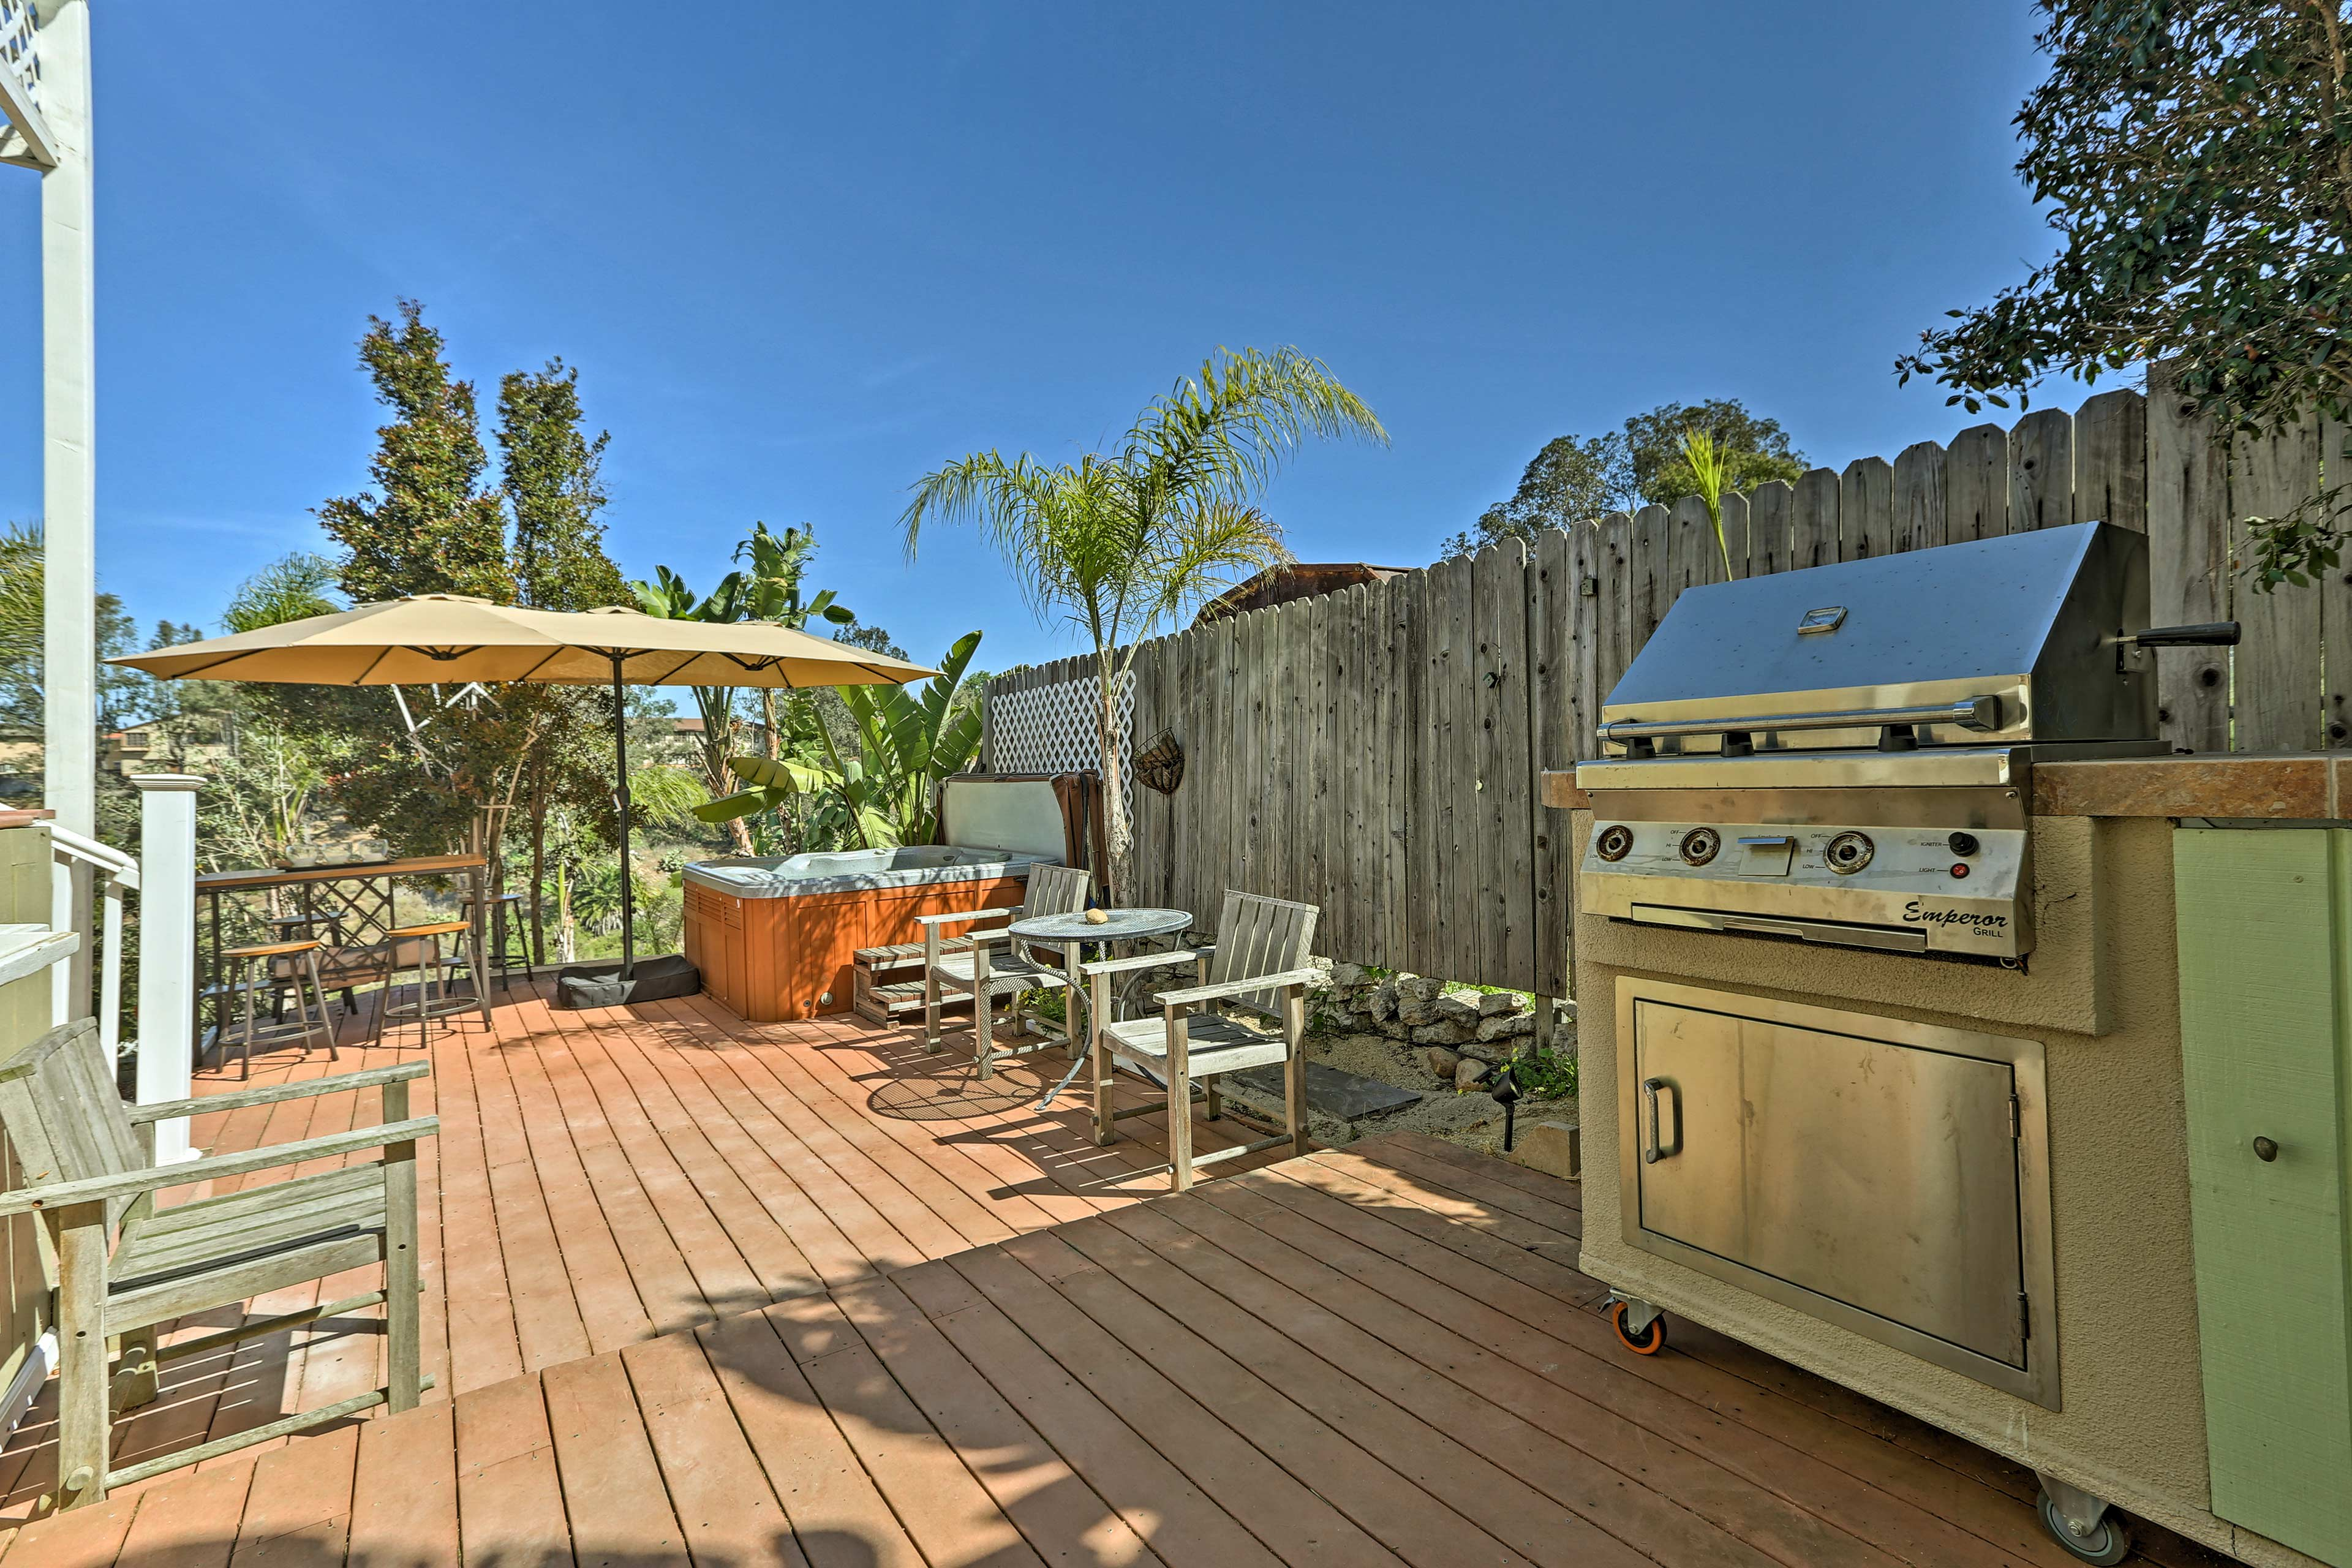 This true entertainment patio features a hot tub, gas grill, and bar area.